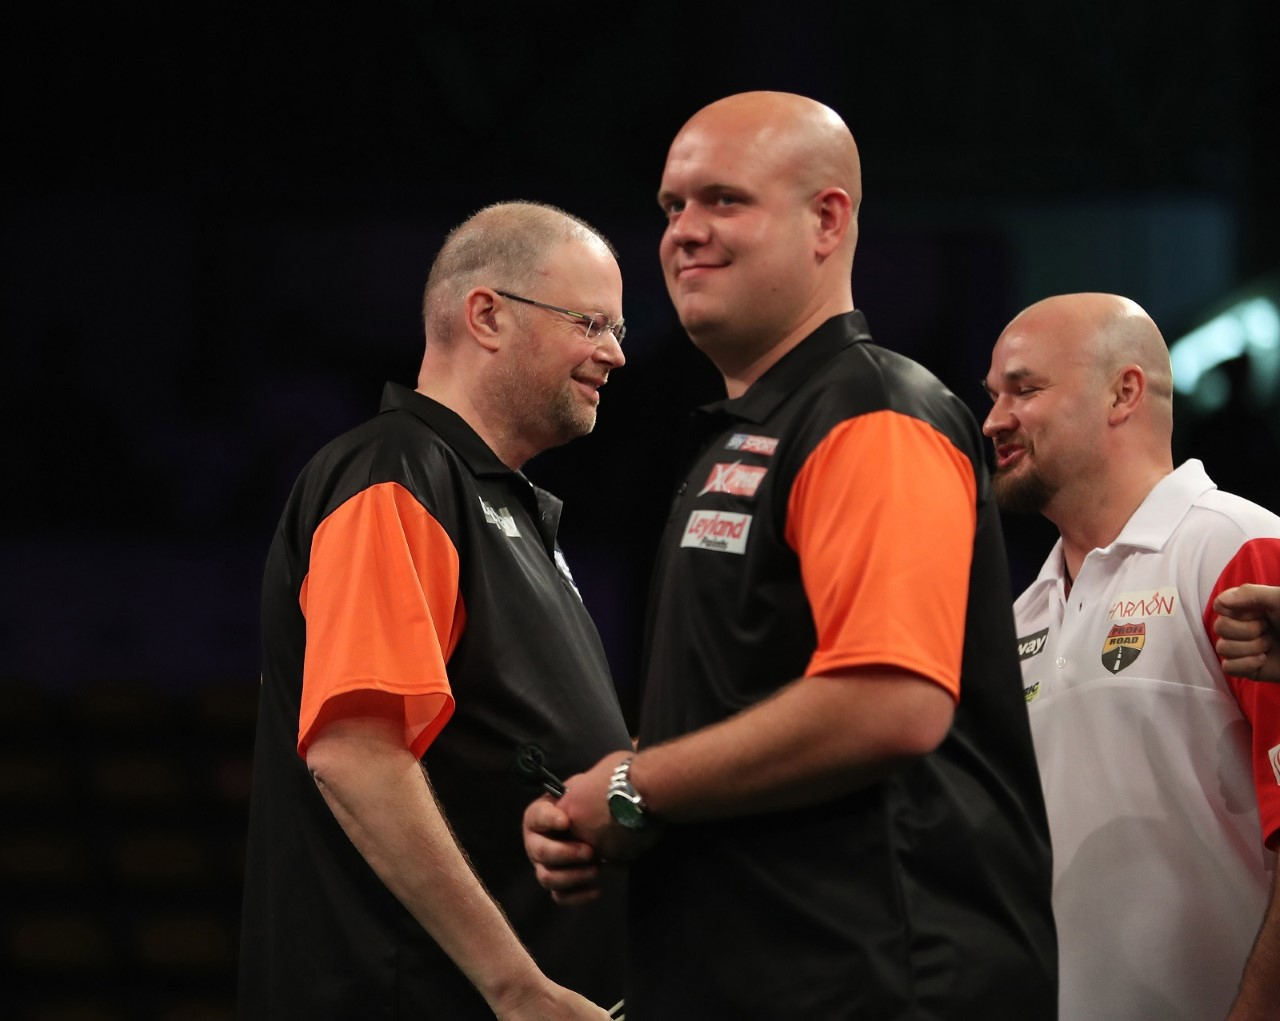 World Cup Of Darts 2021 Frankfurt